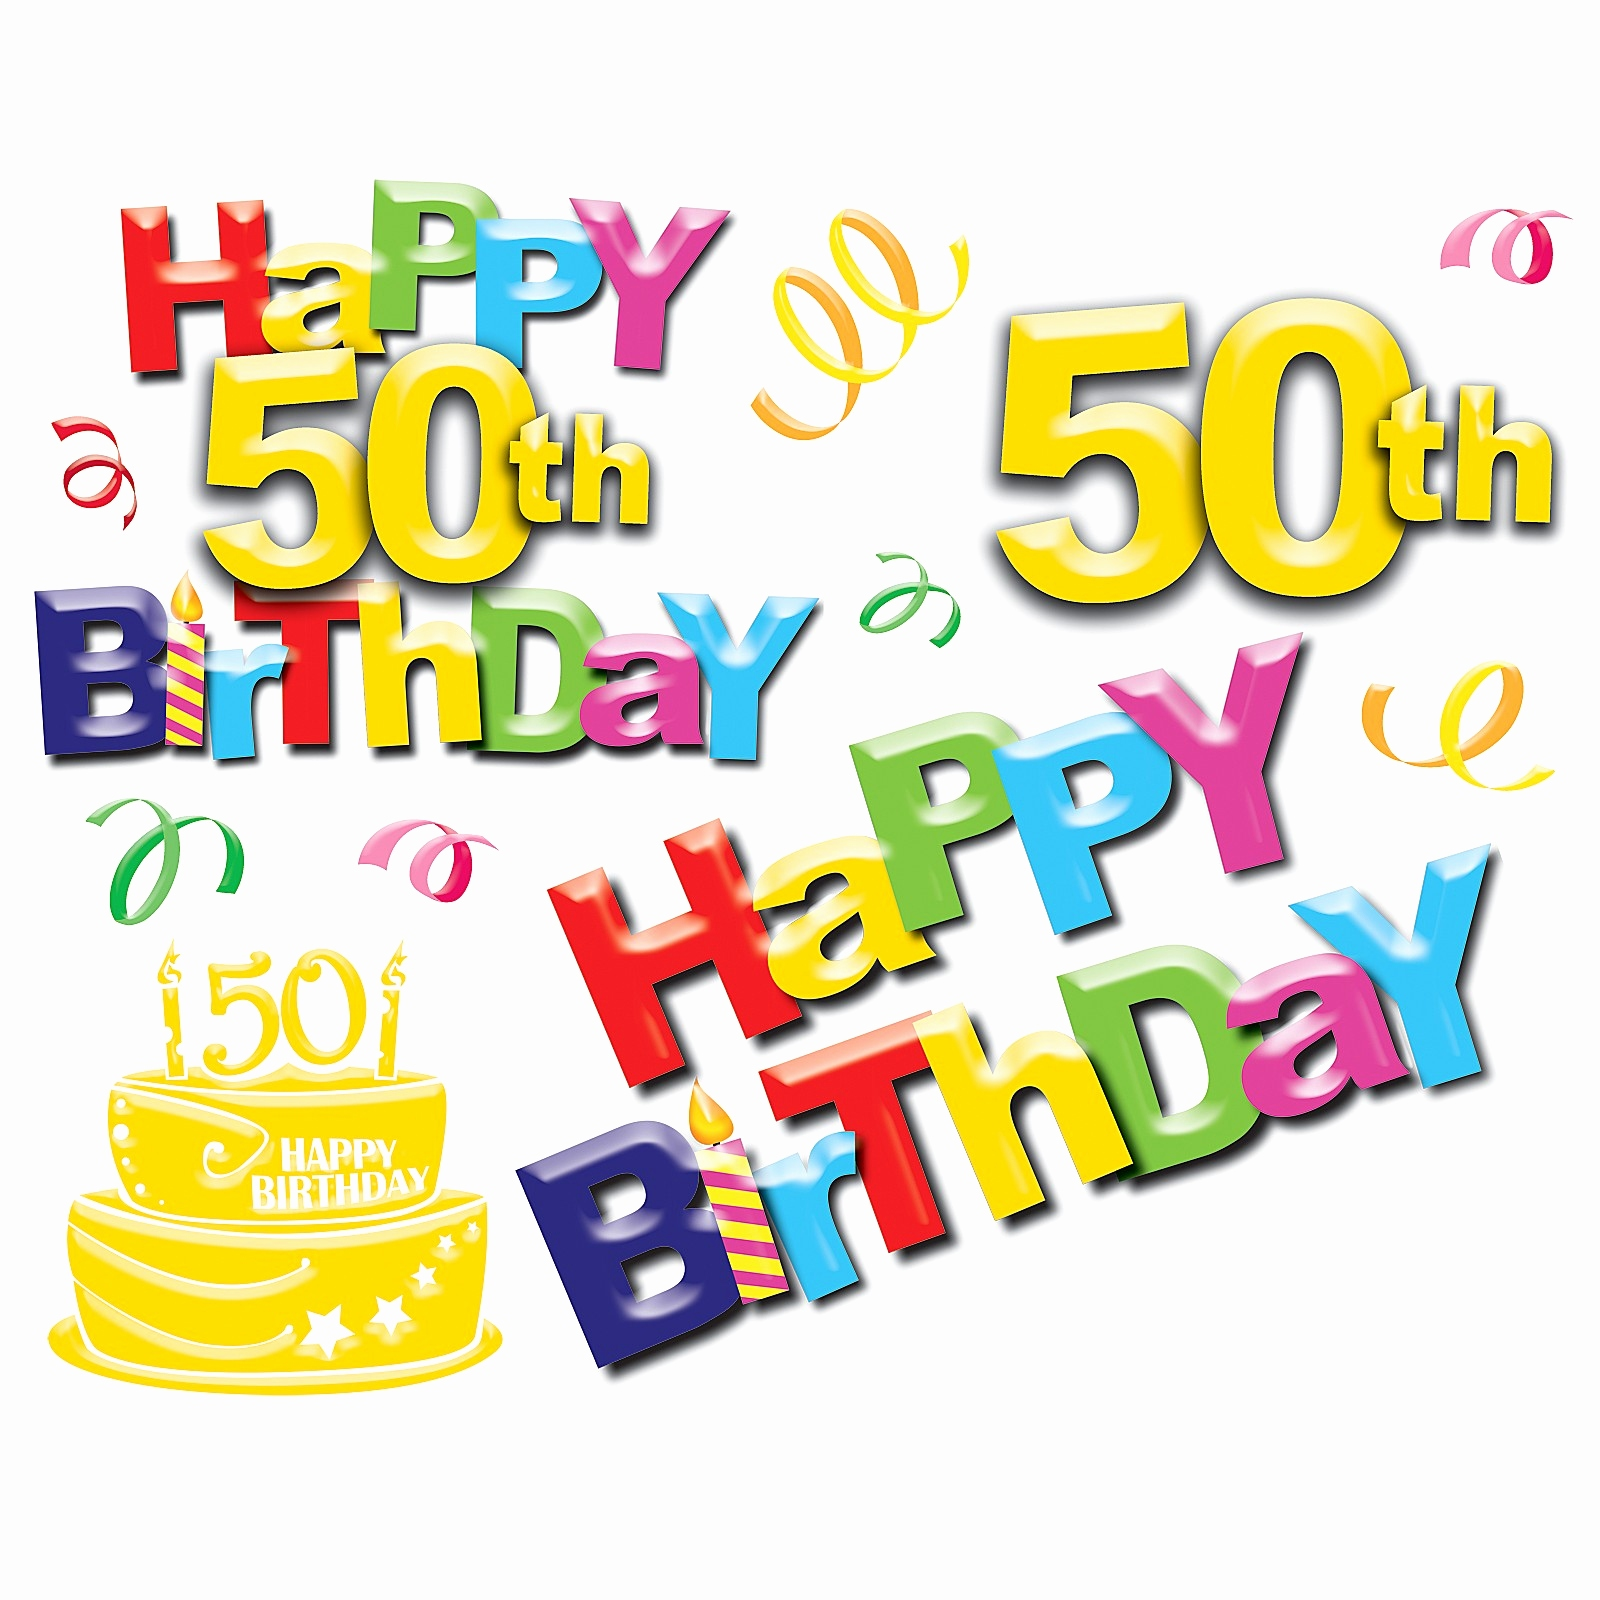 1600x1600 Free 50th Birthday Cards Luxury Happy Birthday 50 Free Download